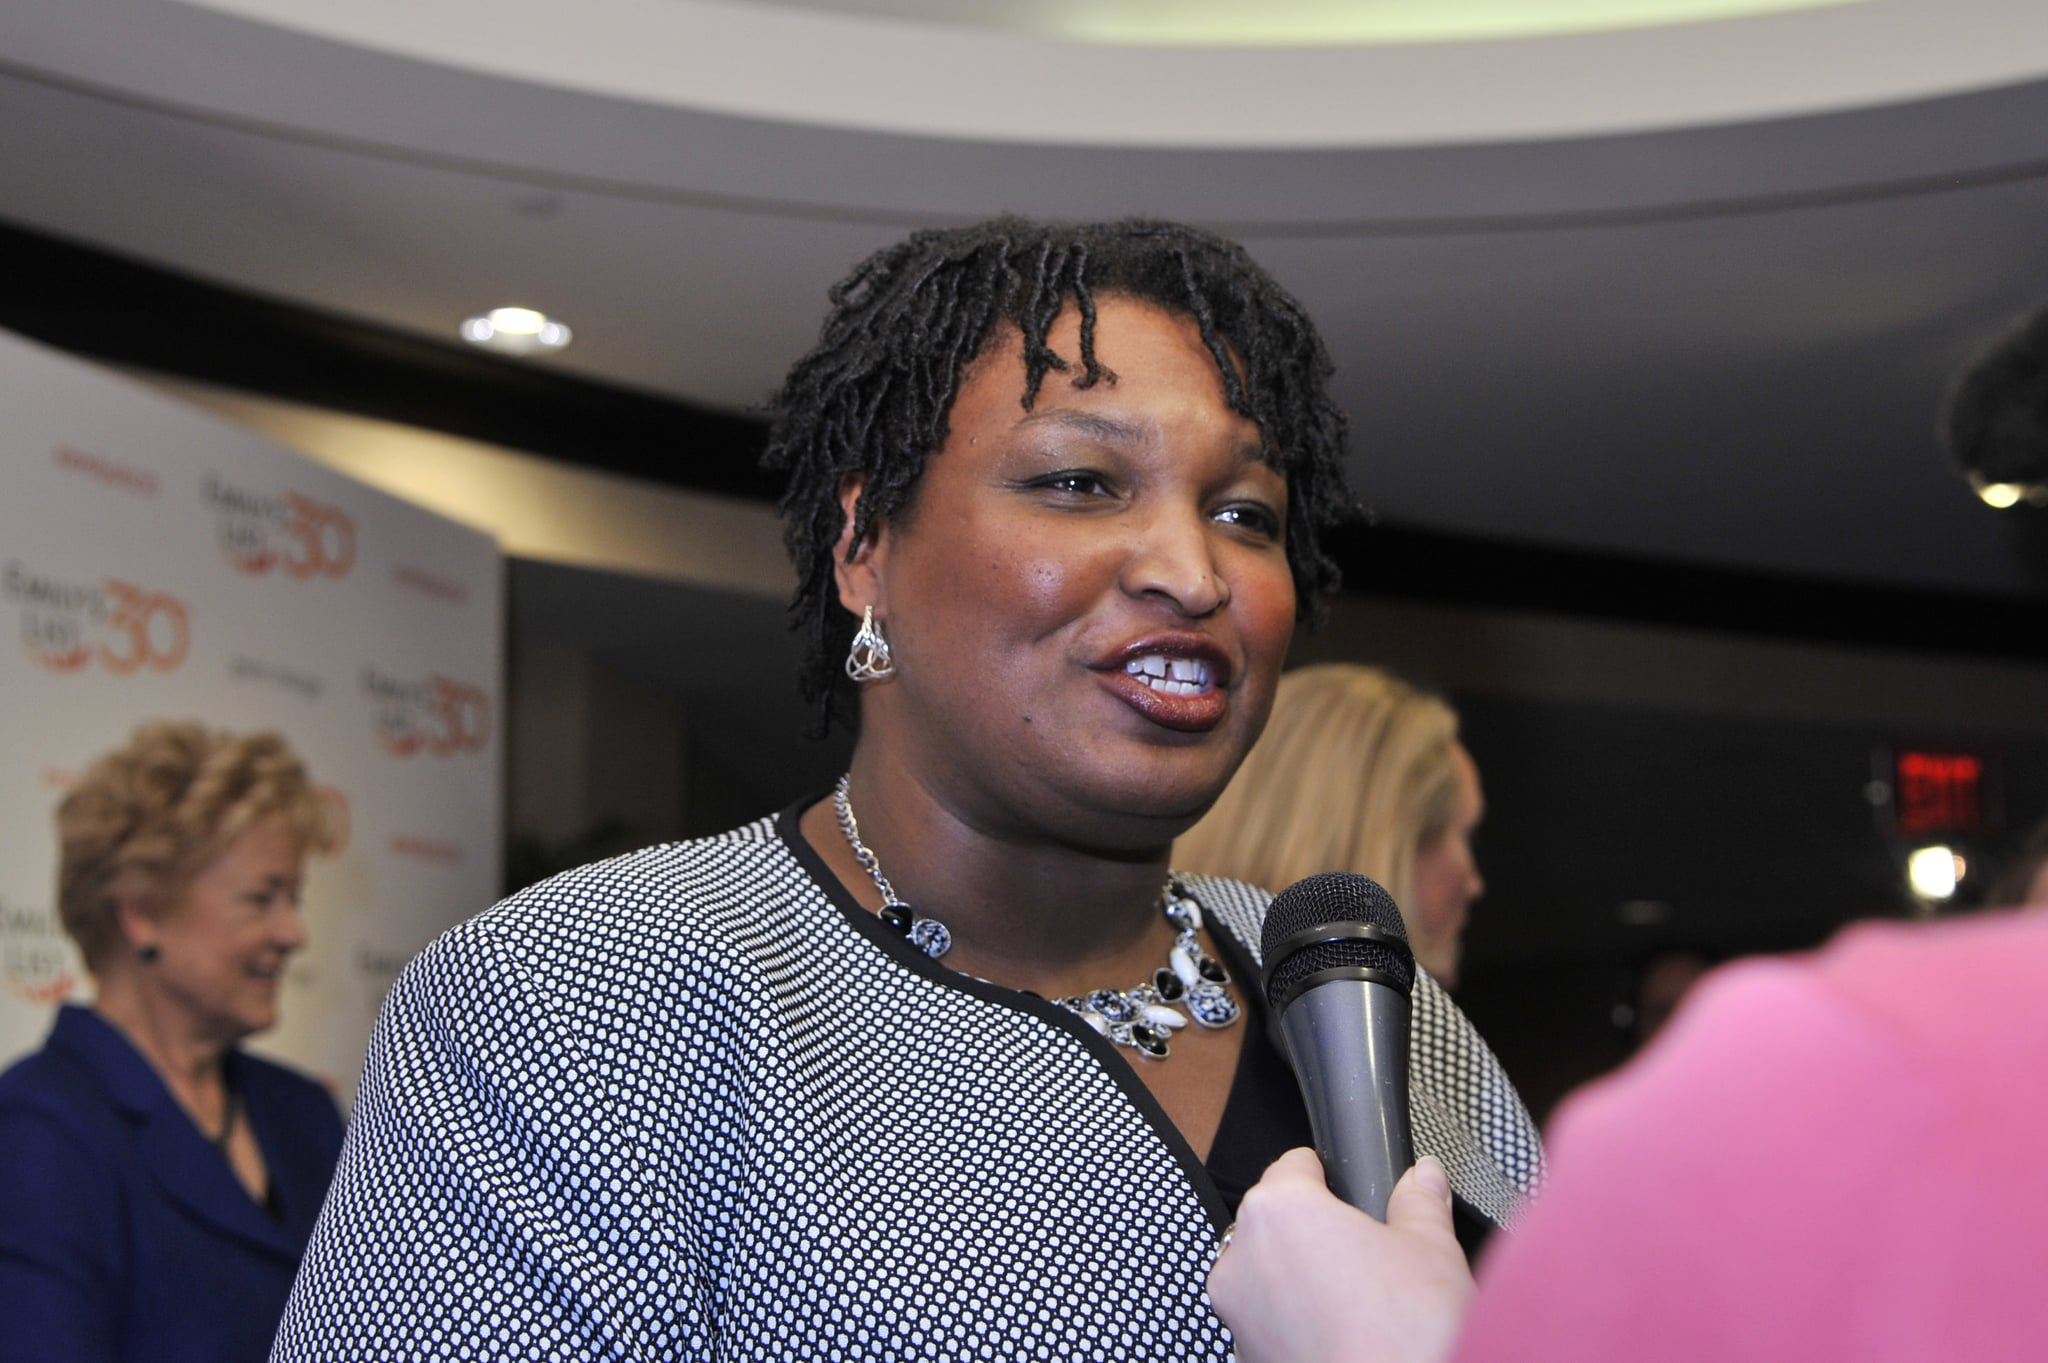 WASHINGTON, DC - MARCH 03:  Georgia House Minority Leader Stacey Abrams attends EMILY's List 30th Anniversary Gala at Washington Hilton on March 3, 2015 in Washington, DC.  (Photo by Kris Connor/Getty Images for EMILY's List)